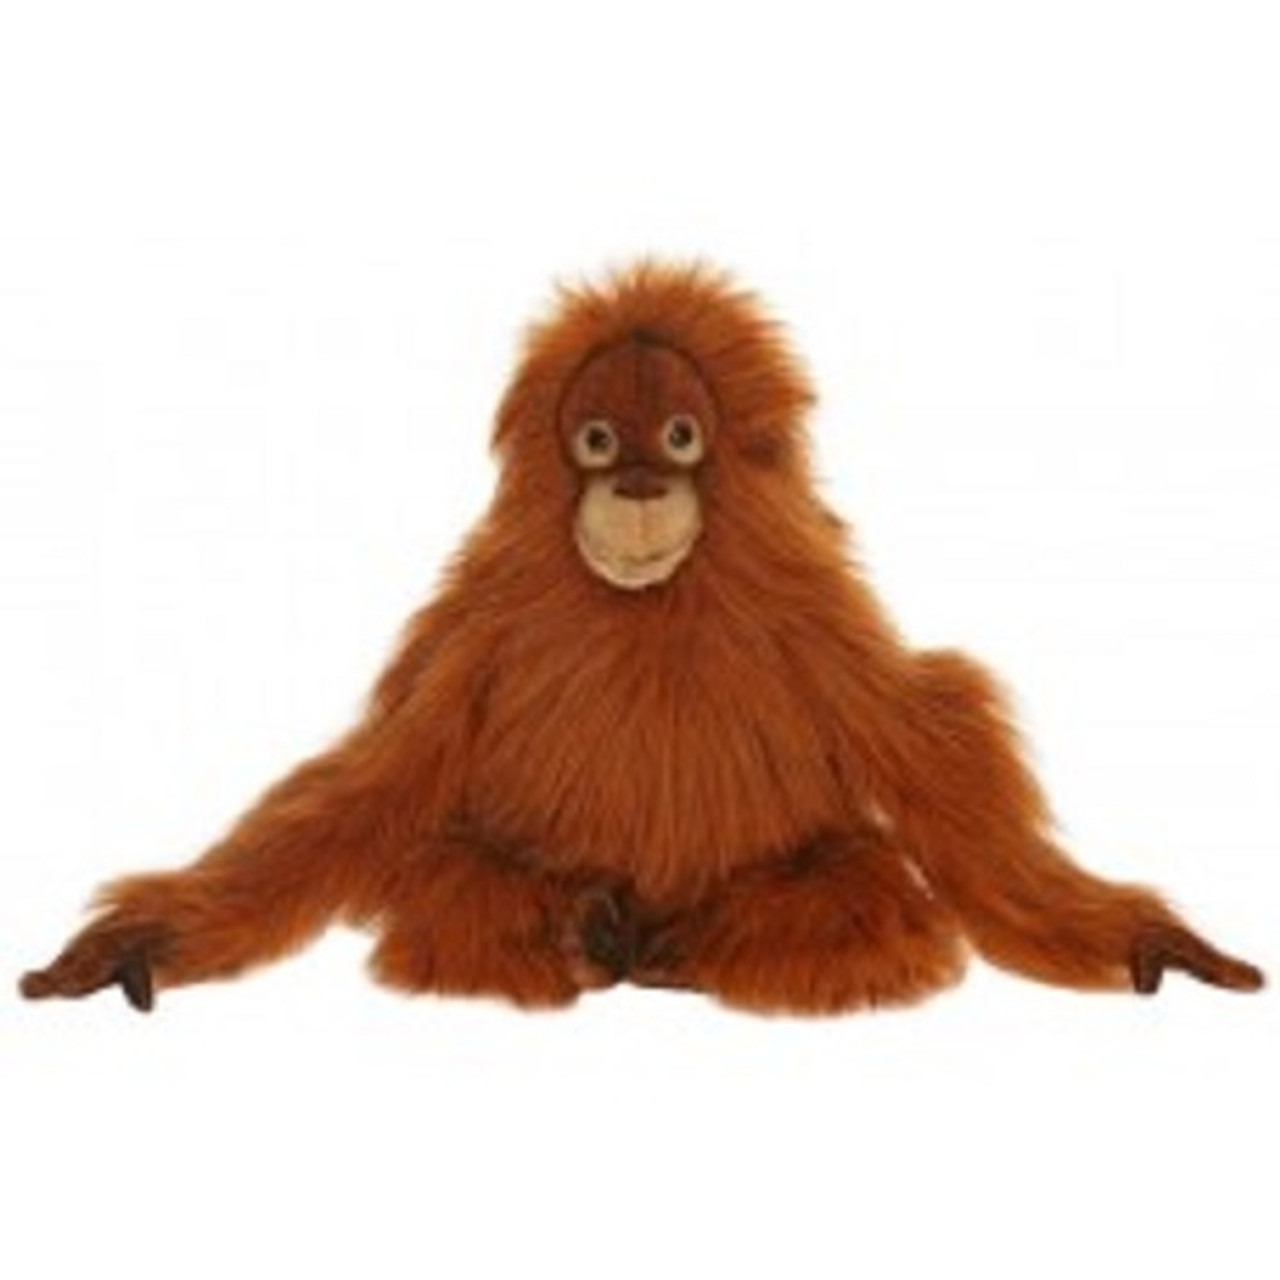 Set Of 2 Life Like Handcrafted Extra Soft Plush Orangutan Baby